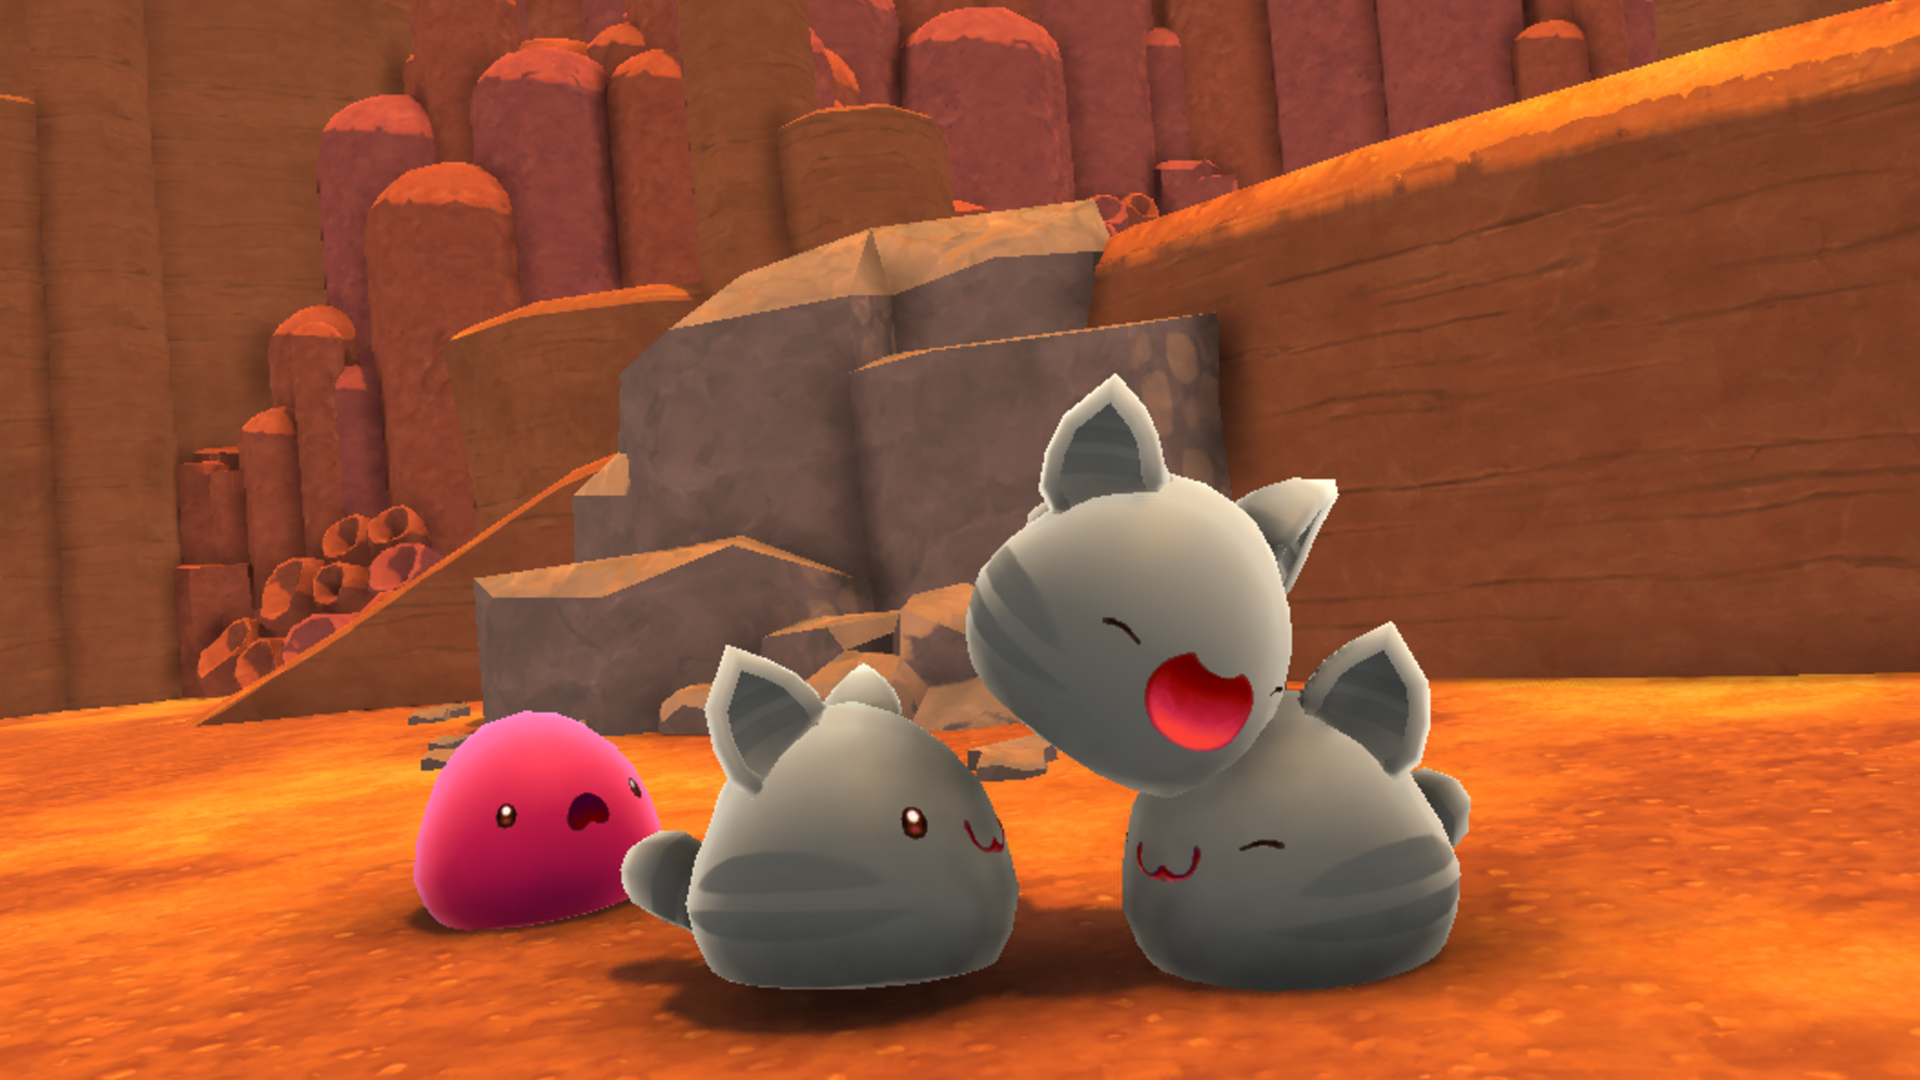 Tabby Slime - Learn about Slime Types in Slime Rancher